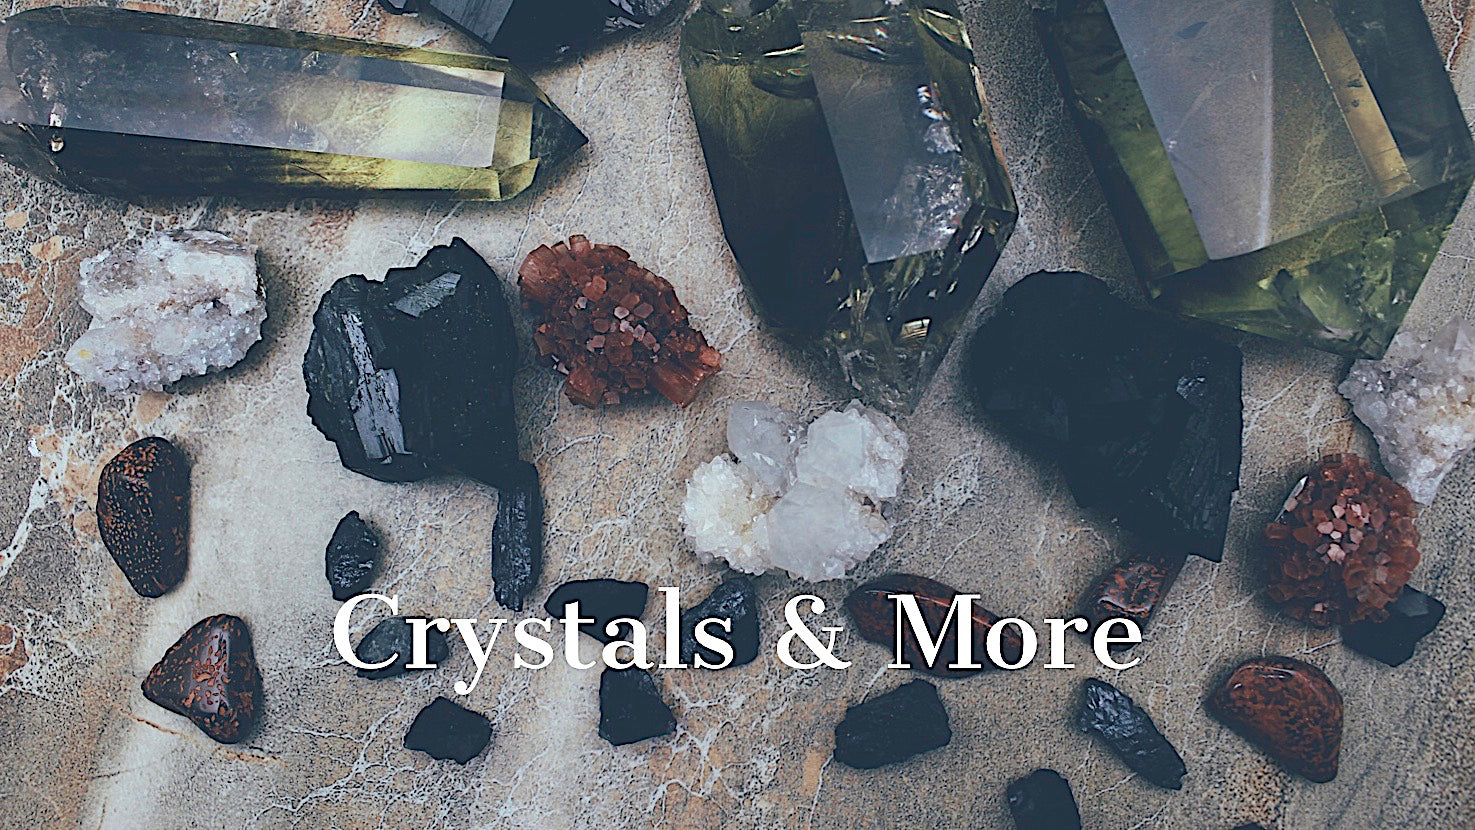 CRYSTALS AND MORE